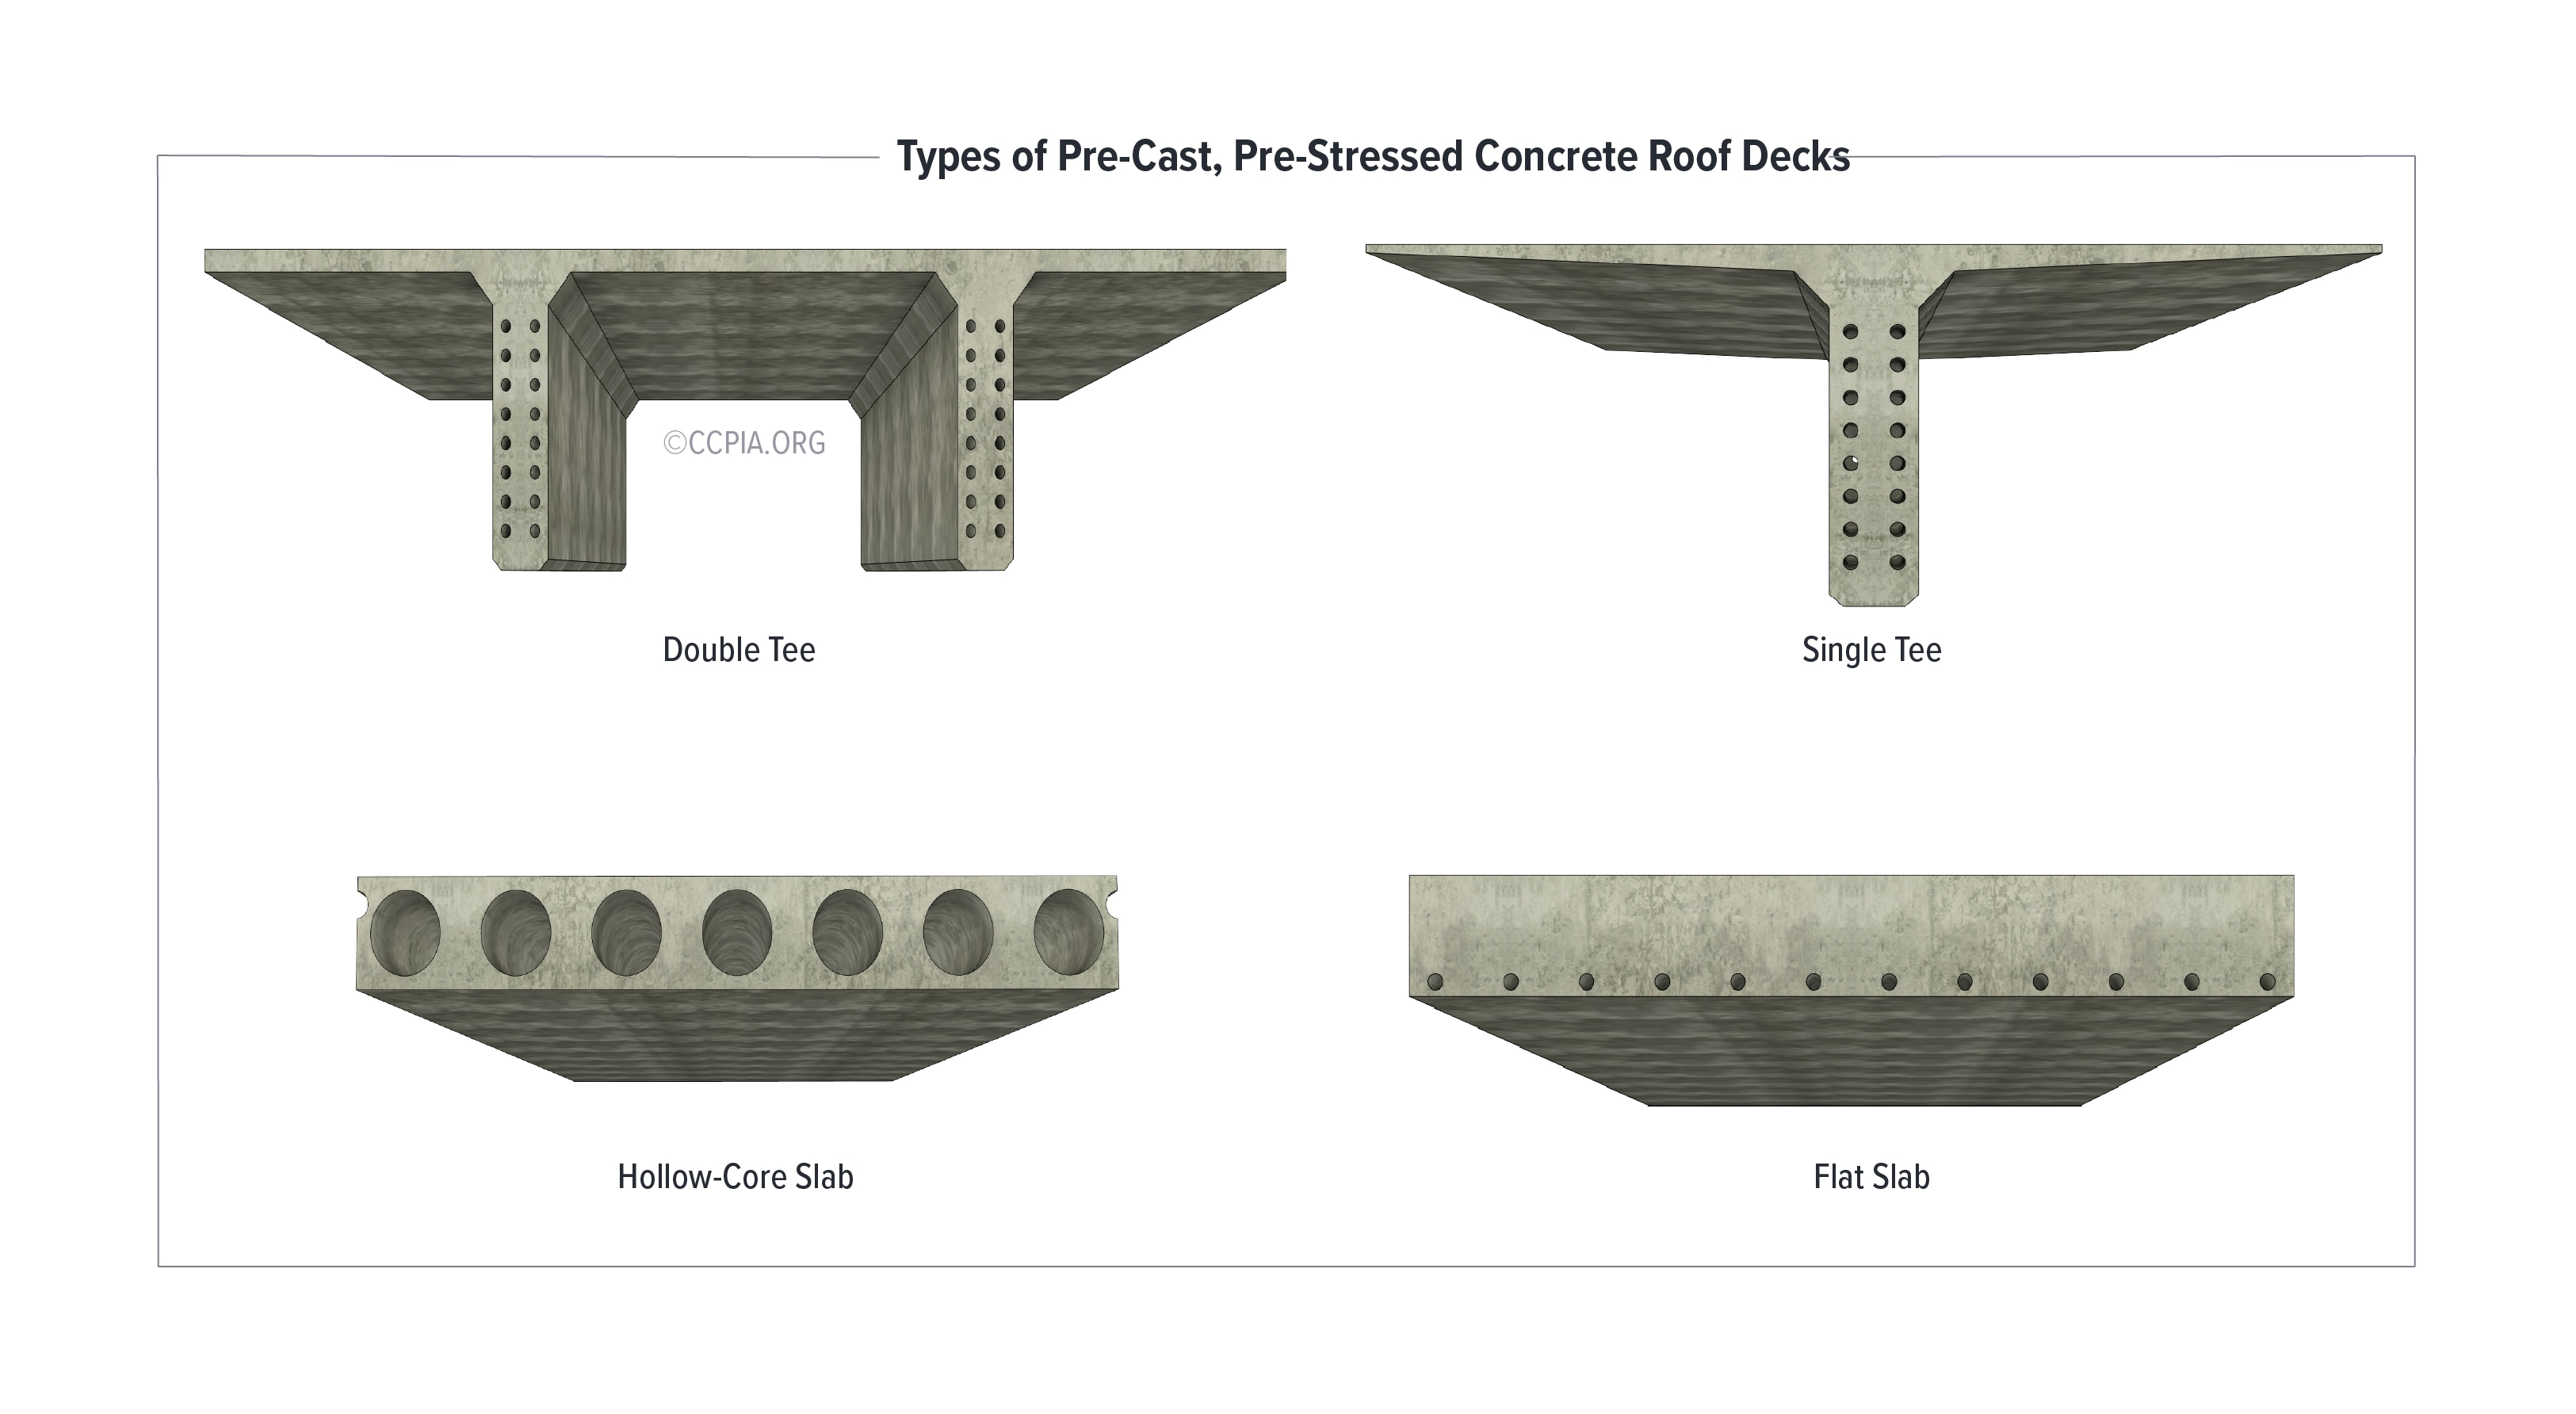 Types of Pre-Cast, Pre-Stressed Concrete Roof Decks: Single Tee, Double Tee, Hollow-Core Slab, Flat Slab